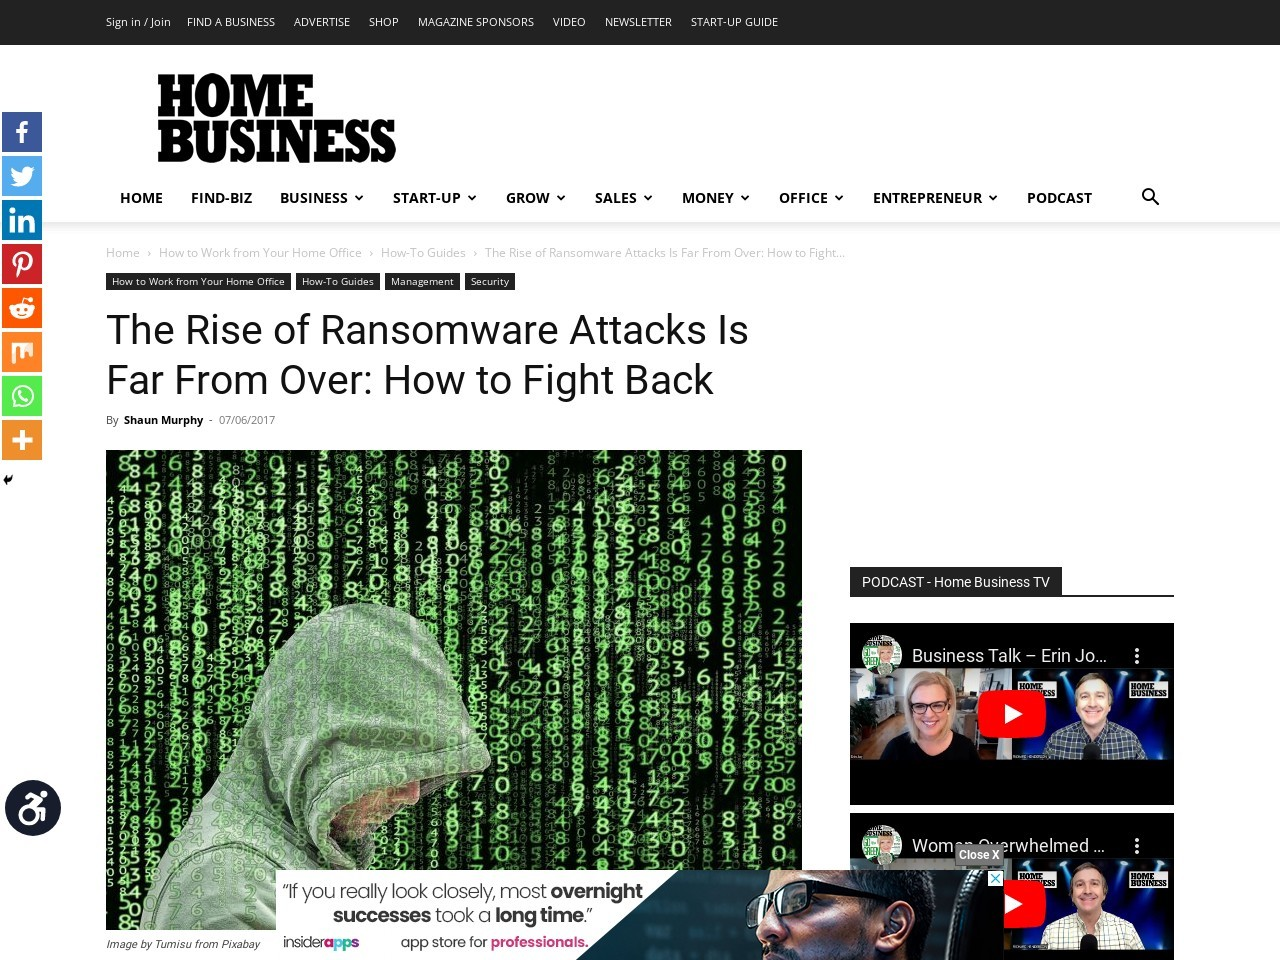 The Rise of Ransonware Is Far From Over: How to Fight Back